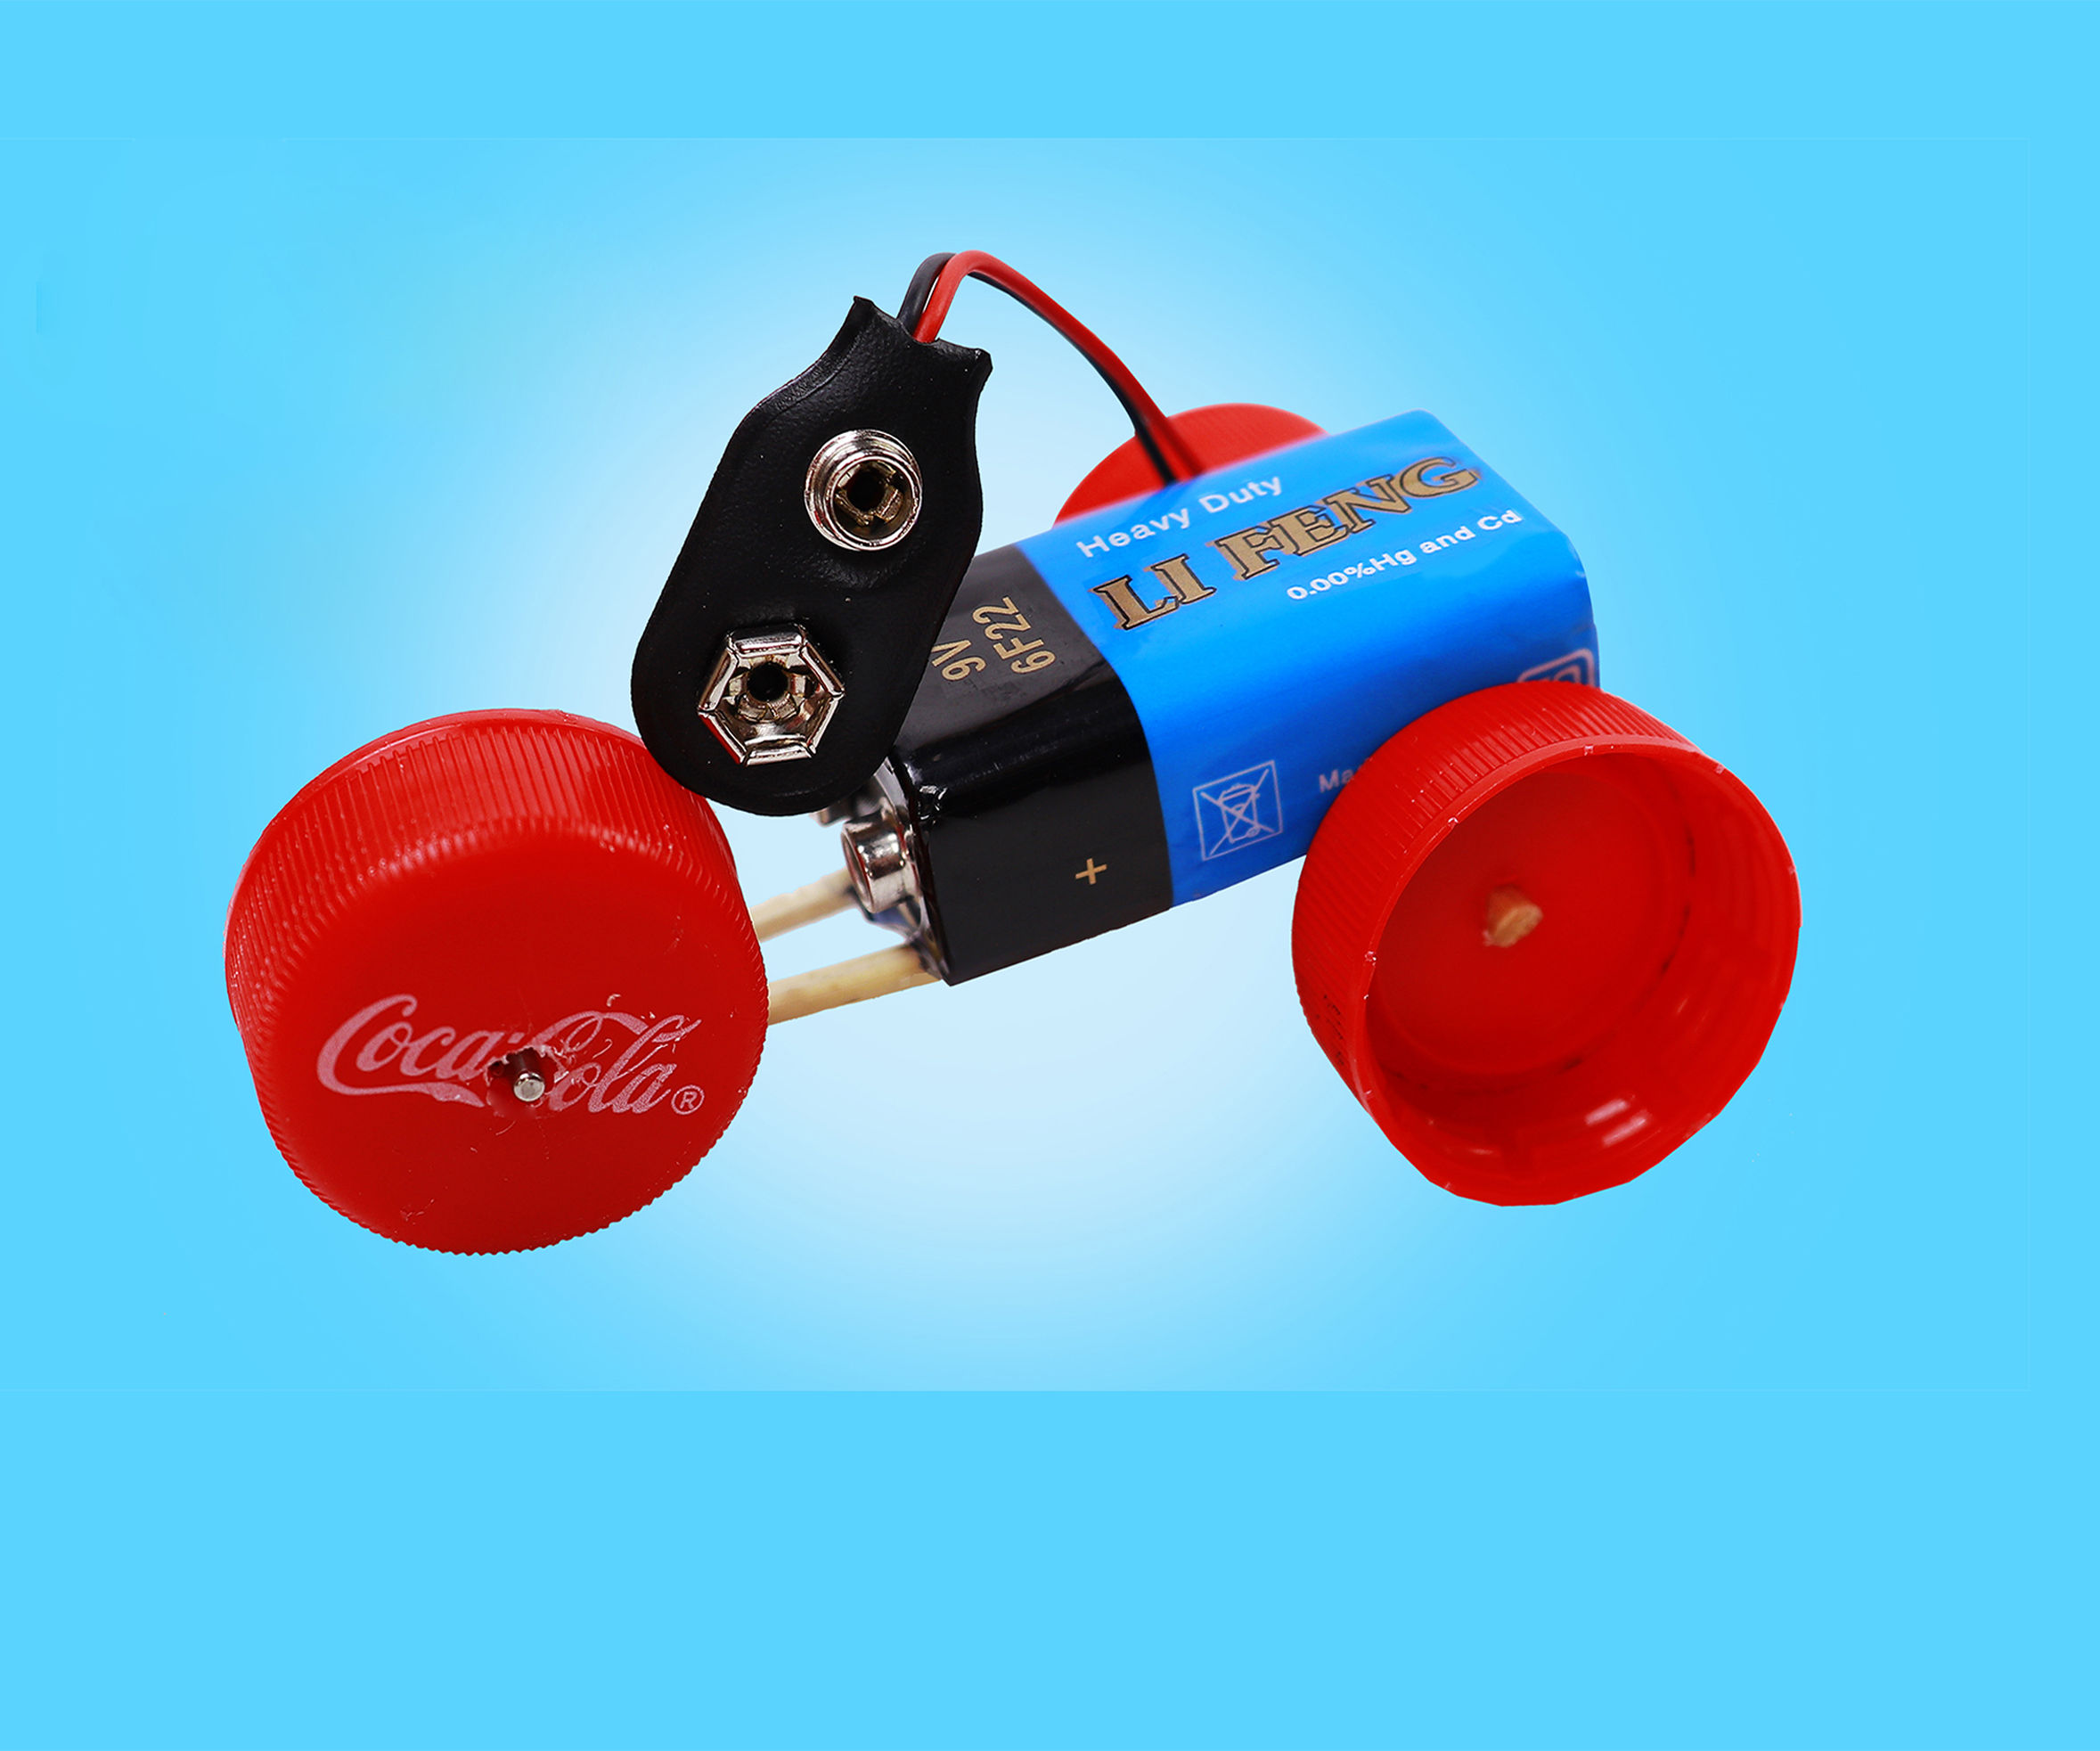 Recycling Bottle Caps Into Electric Car